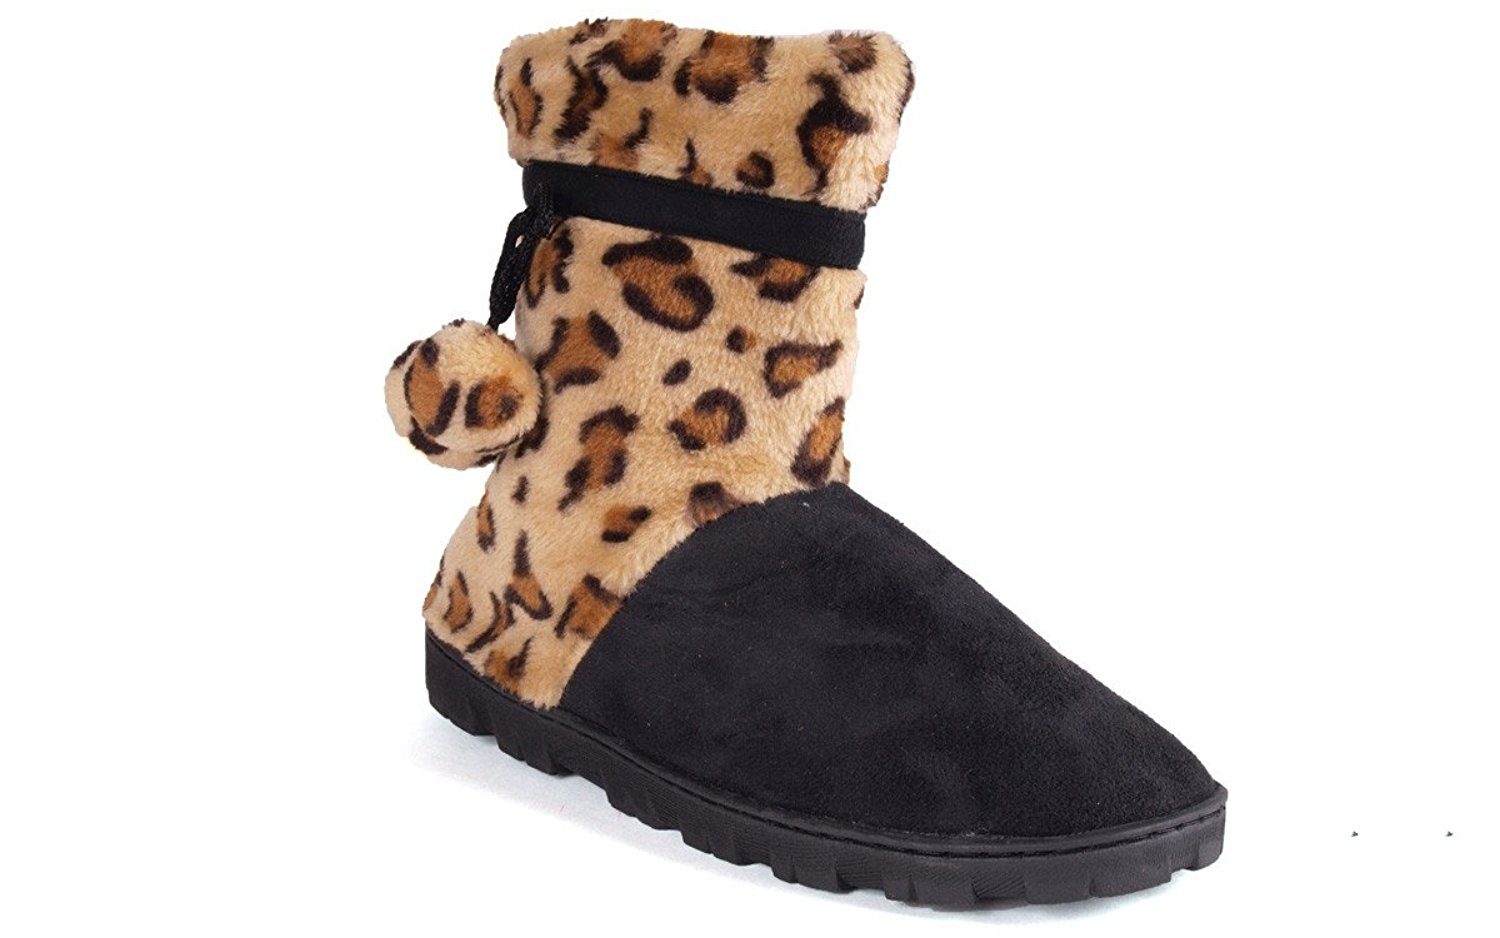 0d29a761d Get Quotations · Happy Feet - Leopard and Black Micro Boot - Snooki Slippers